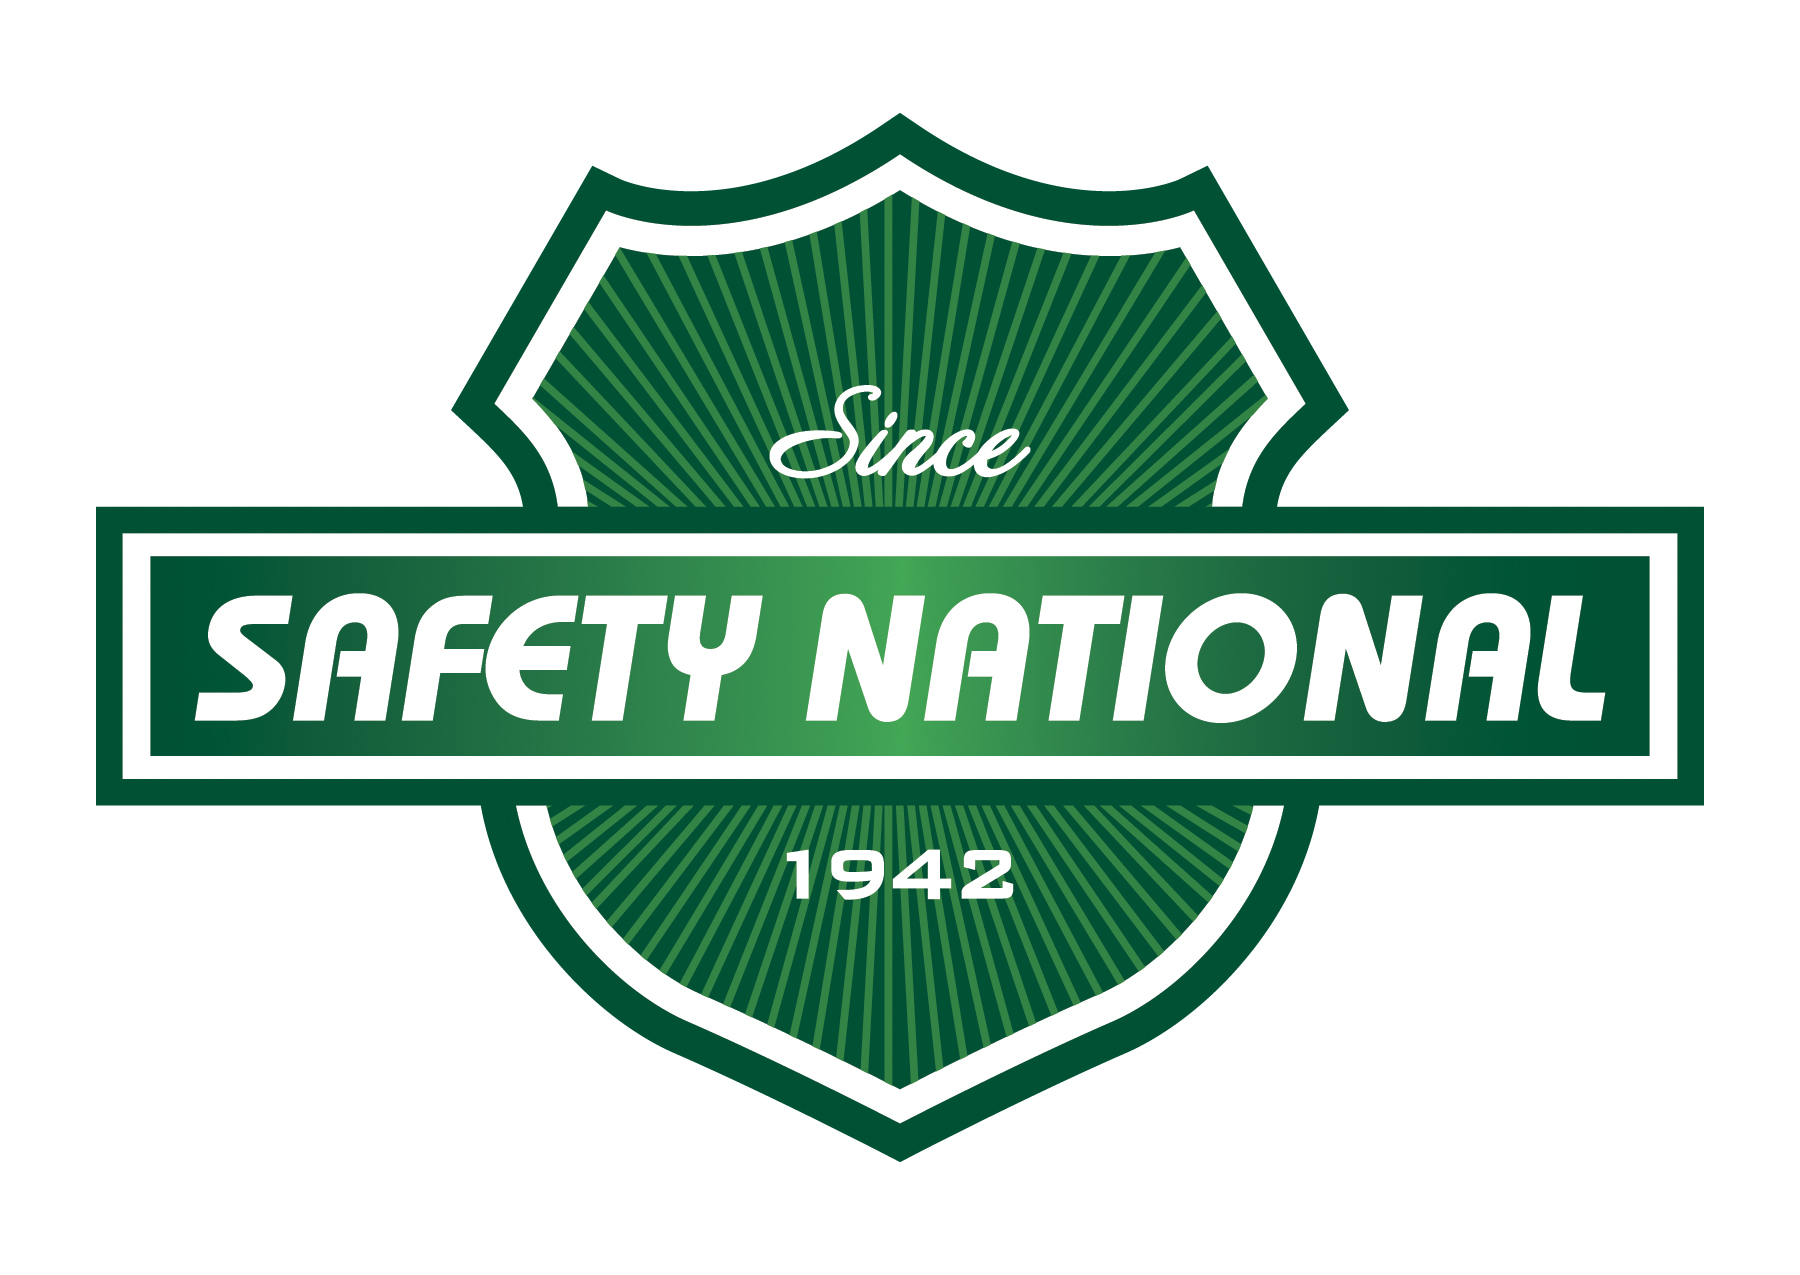 Safety National logo